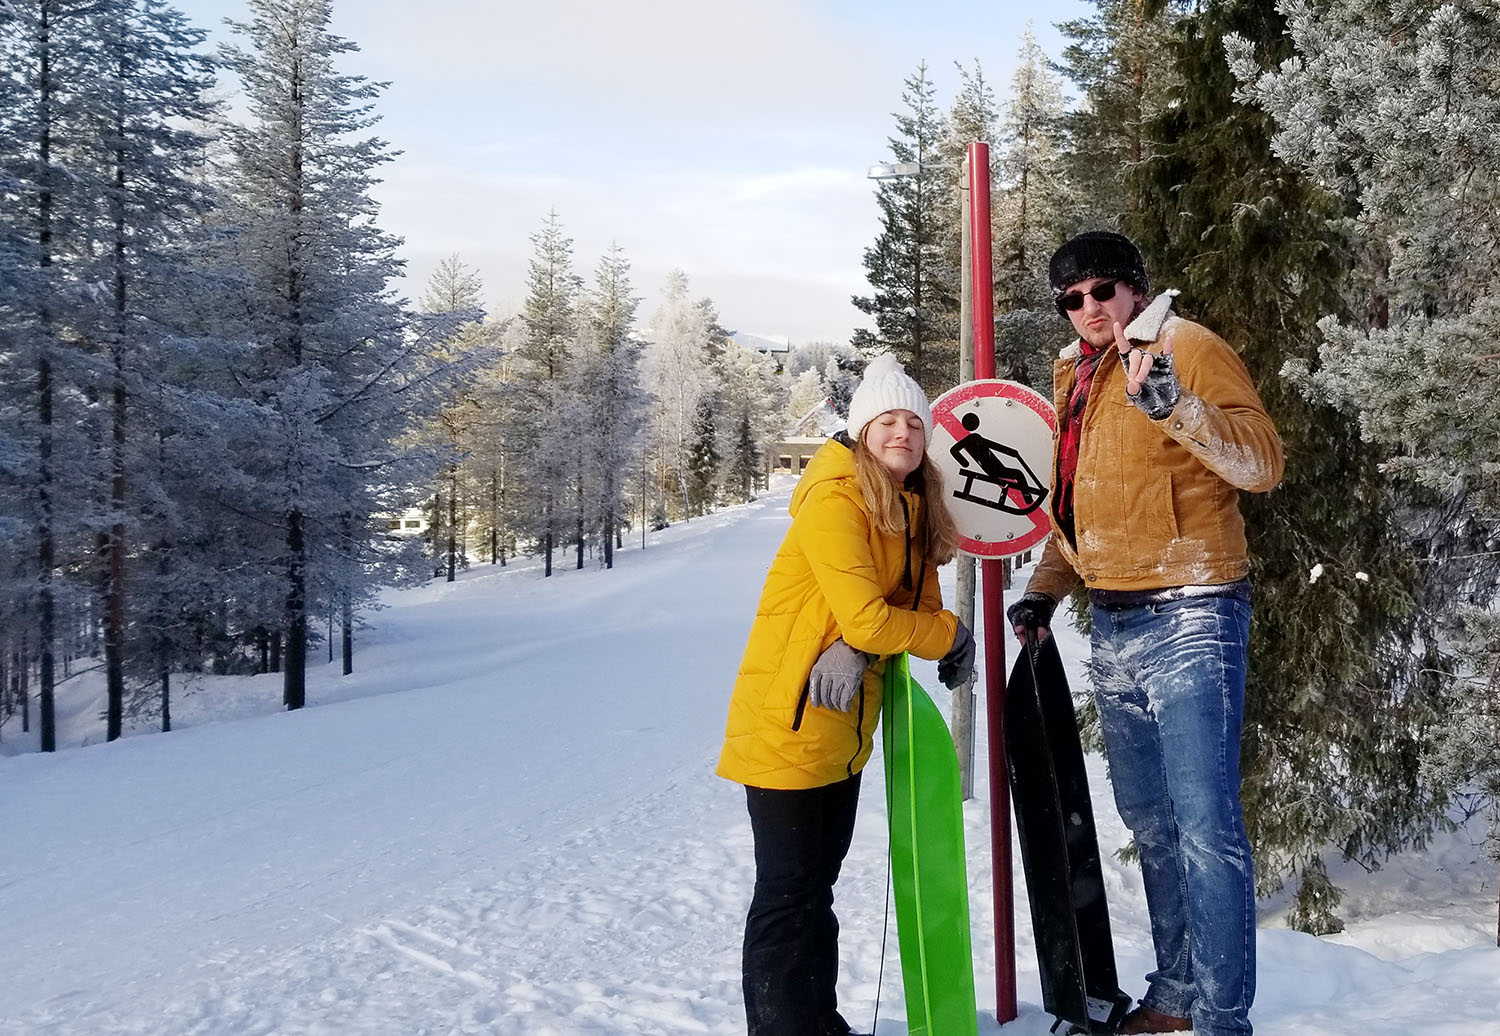 Joel Kreifels visits a ski resort in Lapland while studying abroad in Finland.